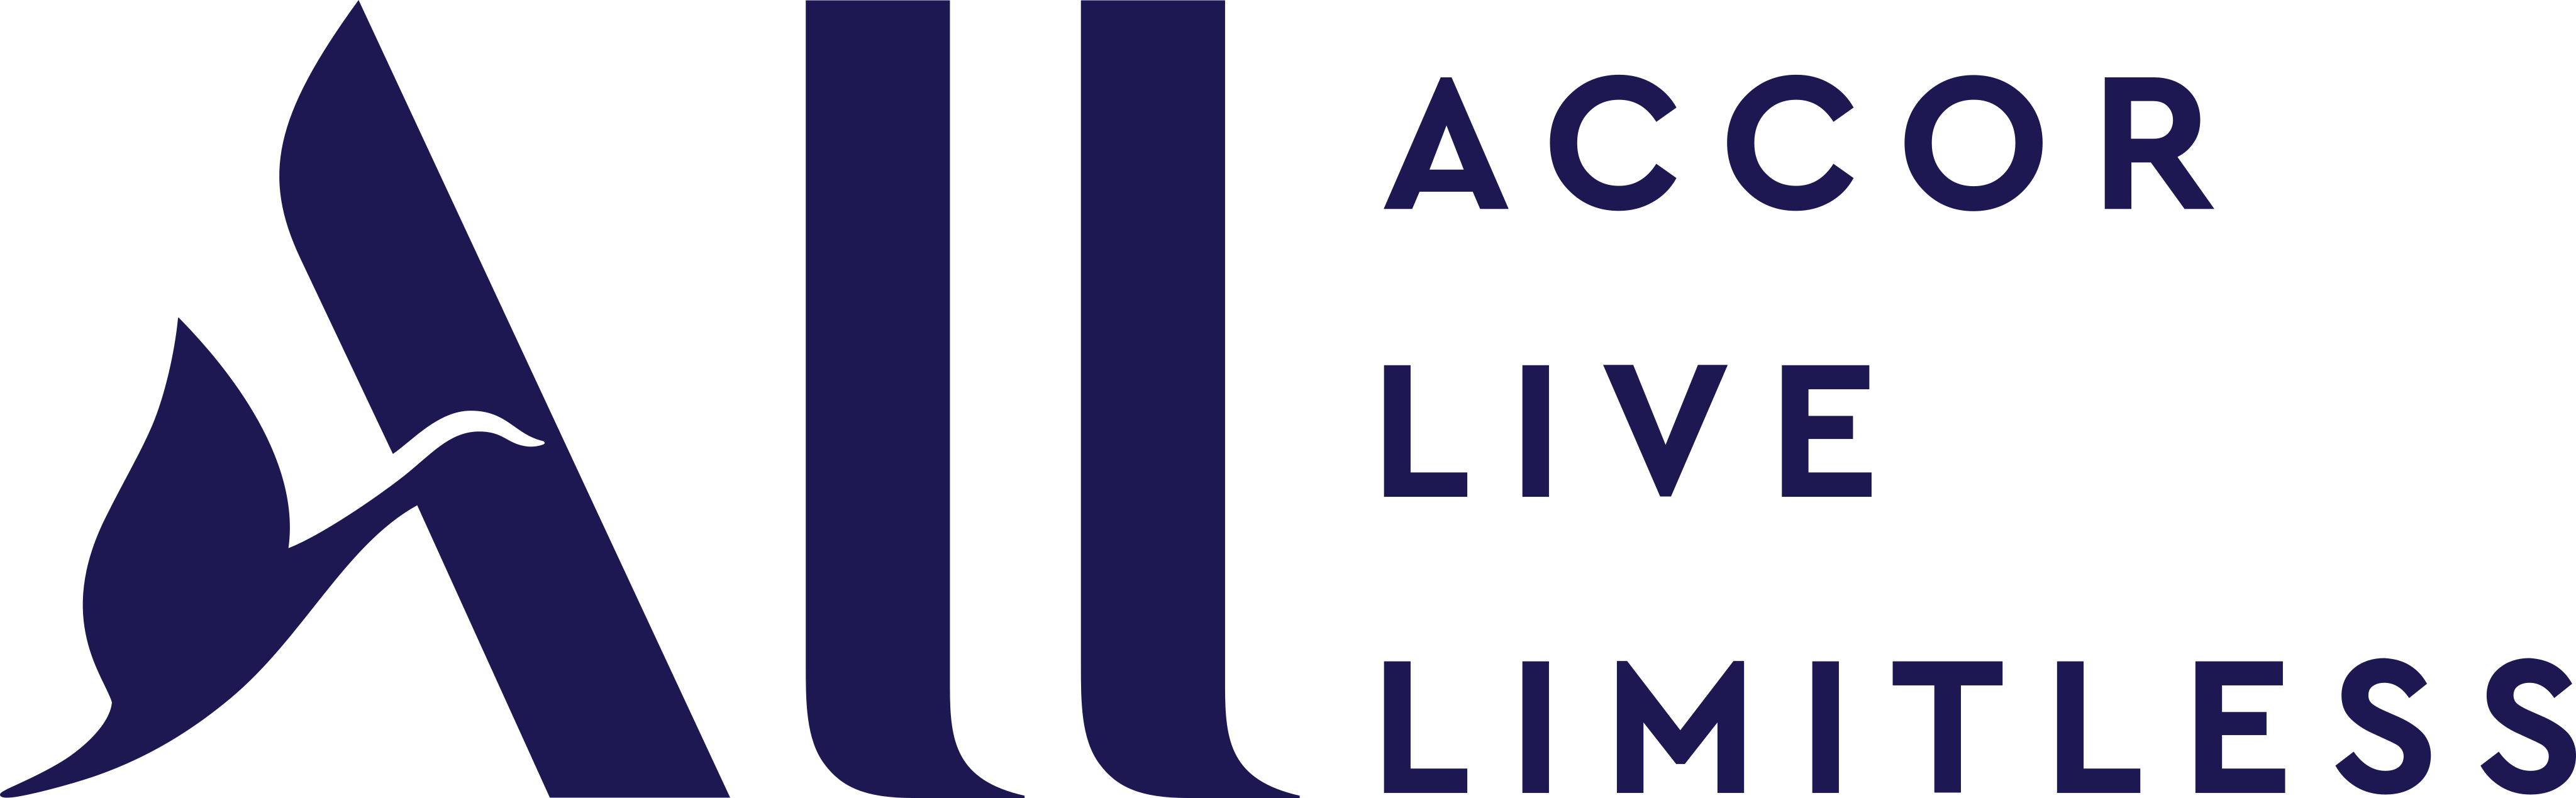 ALL Accor Live Limitless Logo.